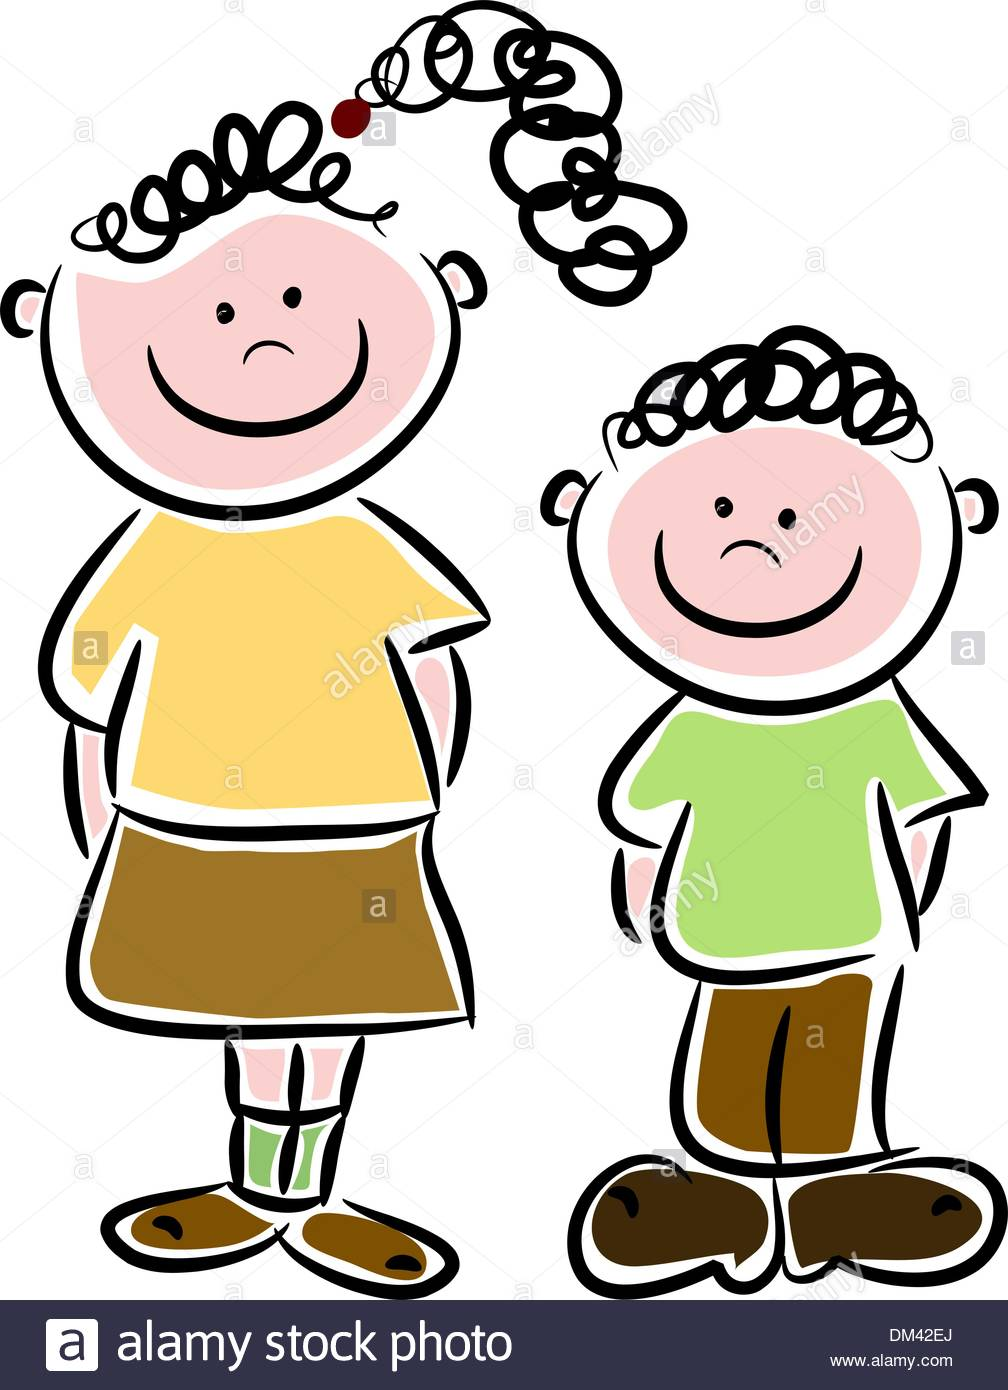 1616 Brother free clipart.